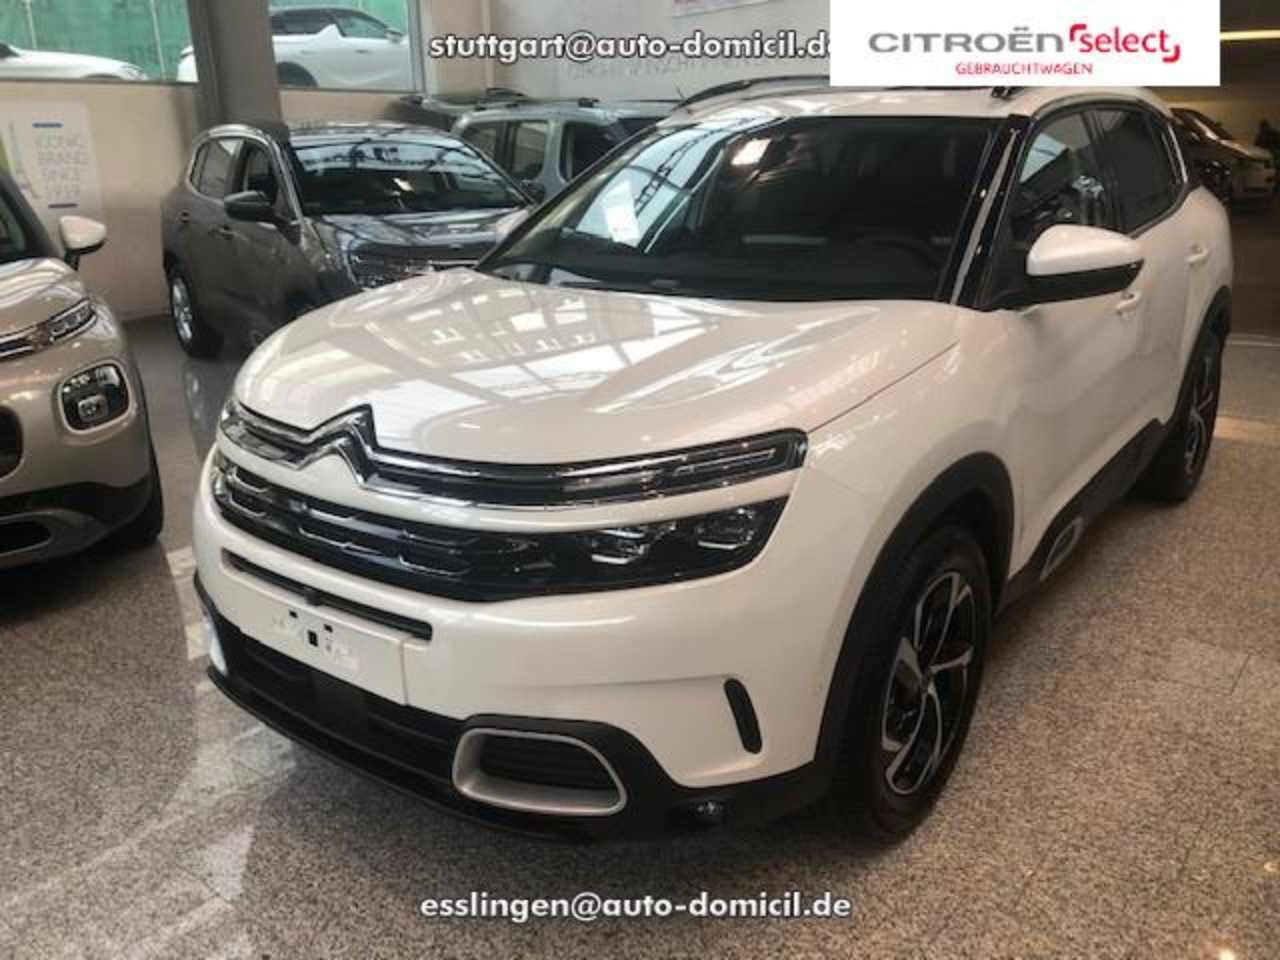 Citroën C5 AIRCROSS 1.6 PureTech 180 Feel (EURO 6d-TEMP)